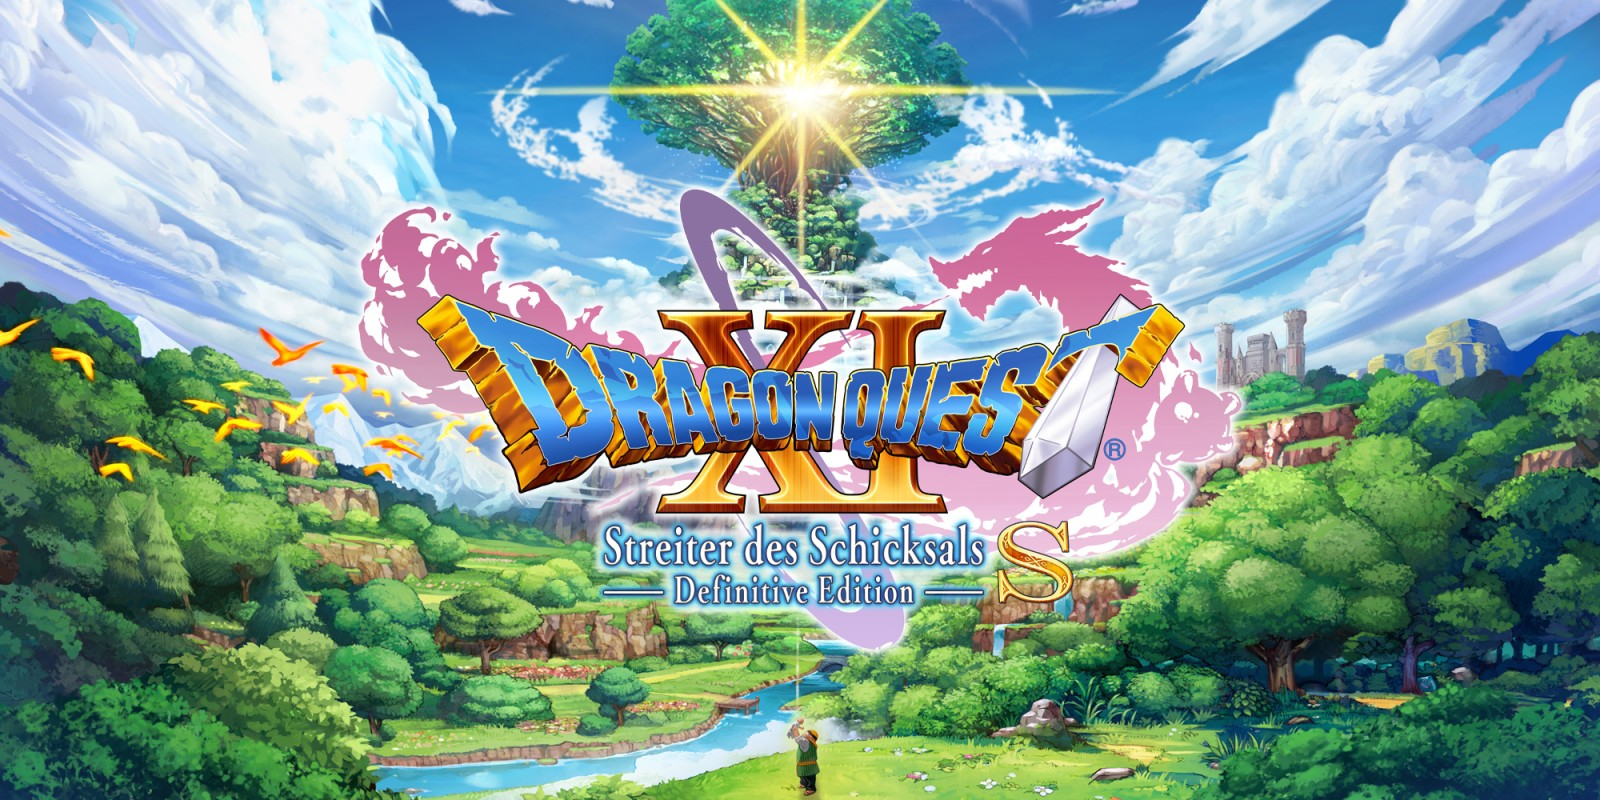 DRAGON QUEST® XI S: Streiter des Schicksals – Definitive Edition